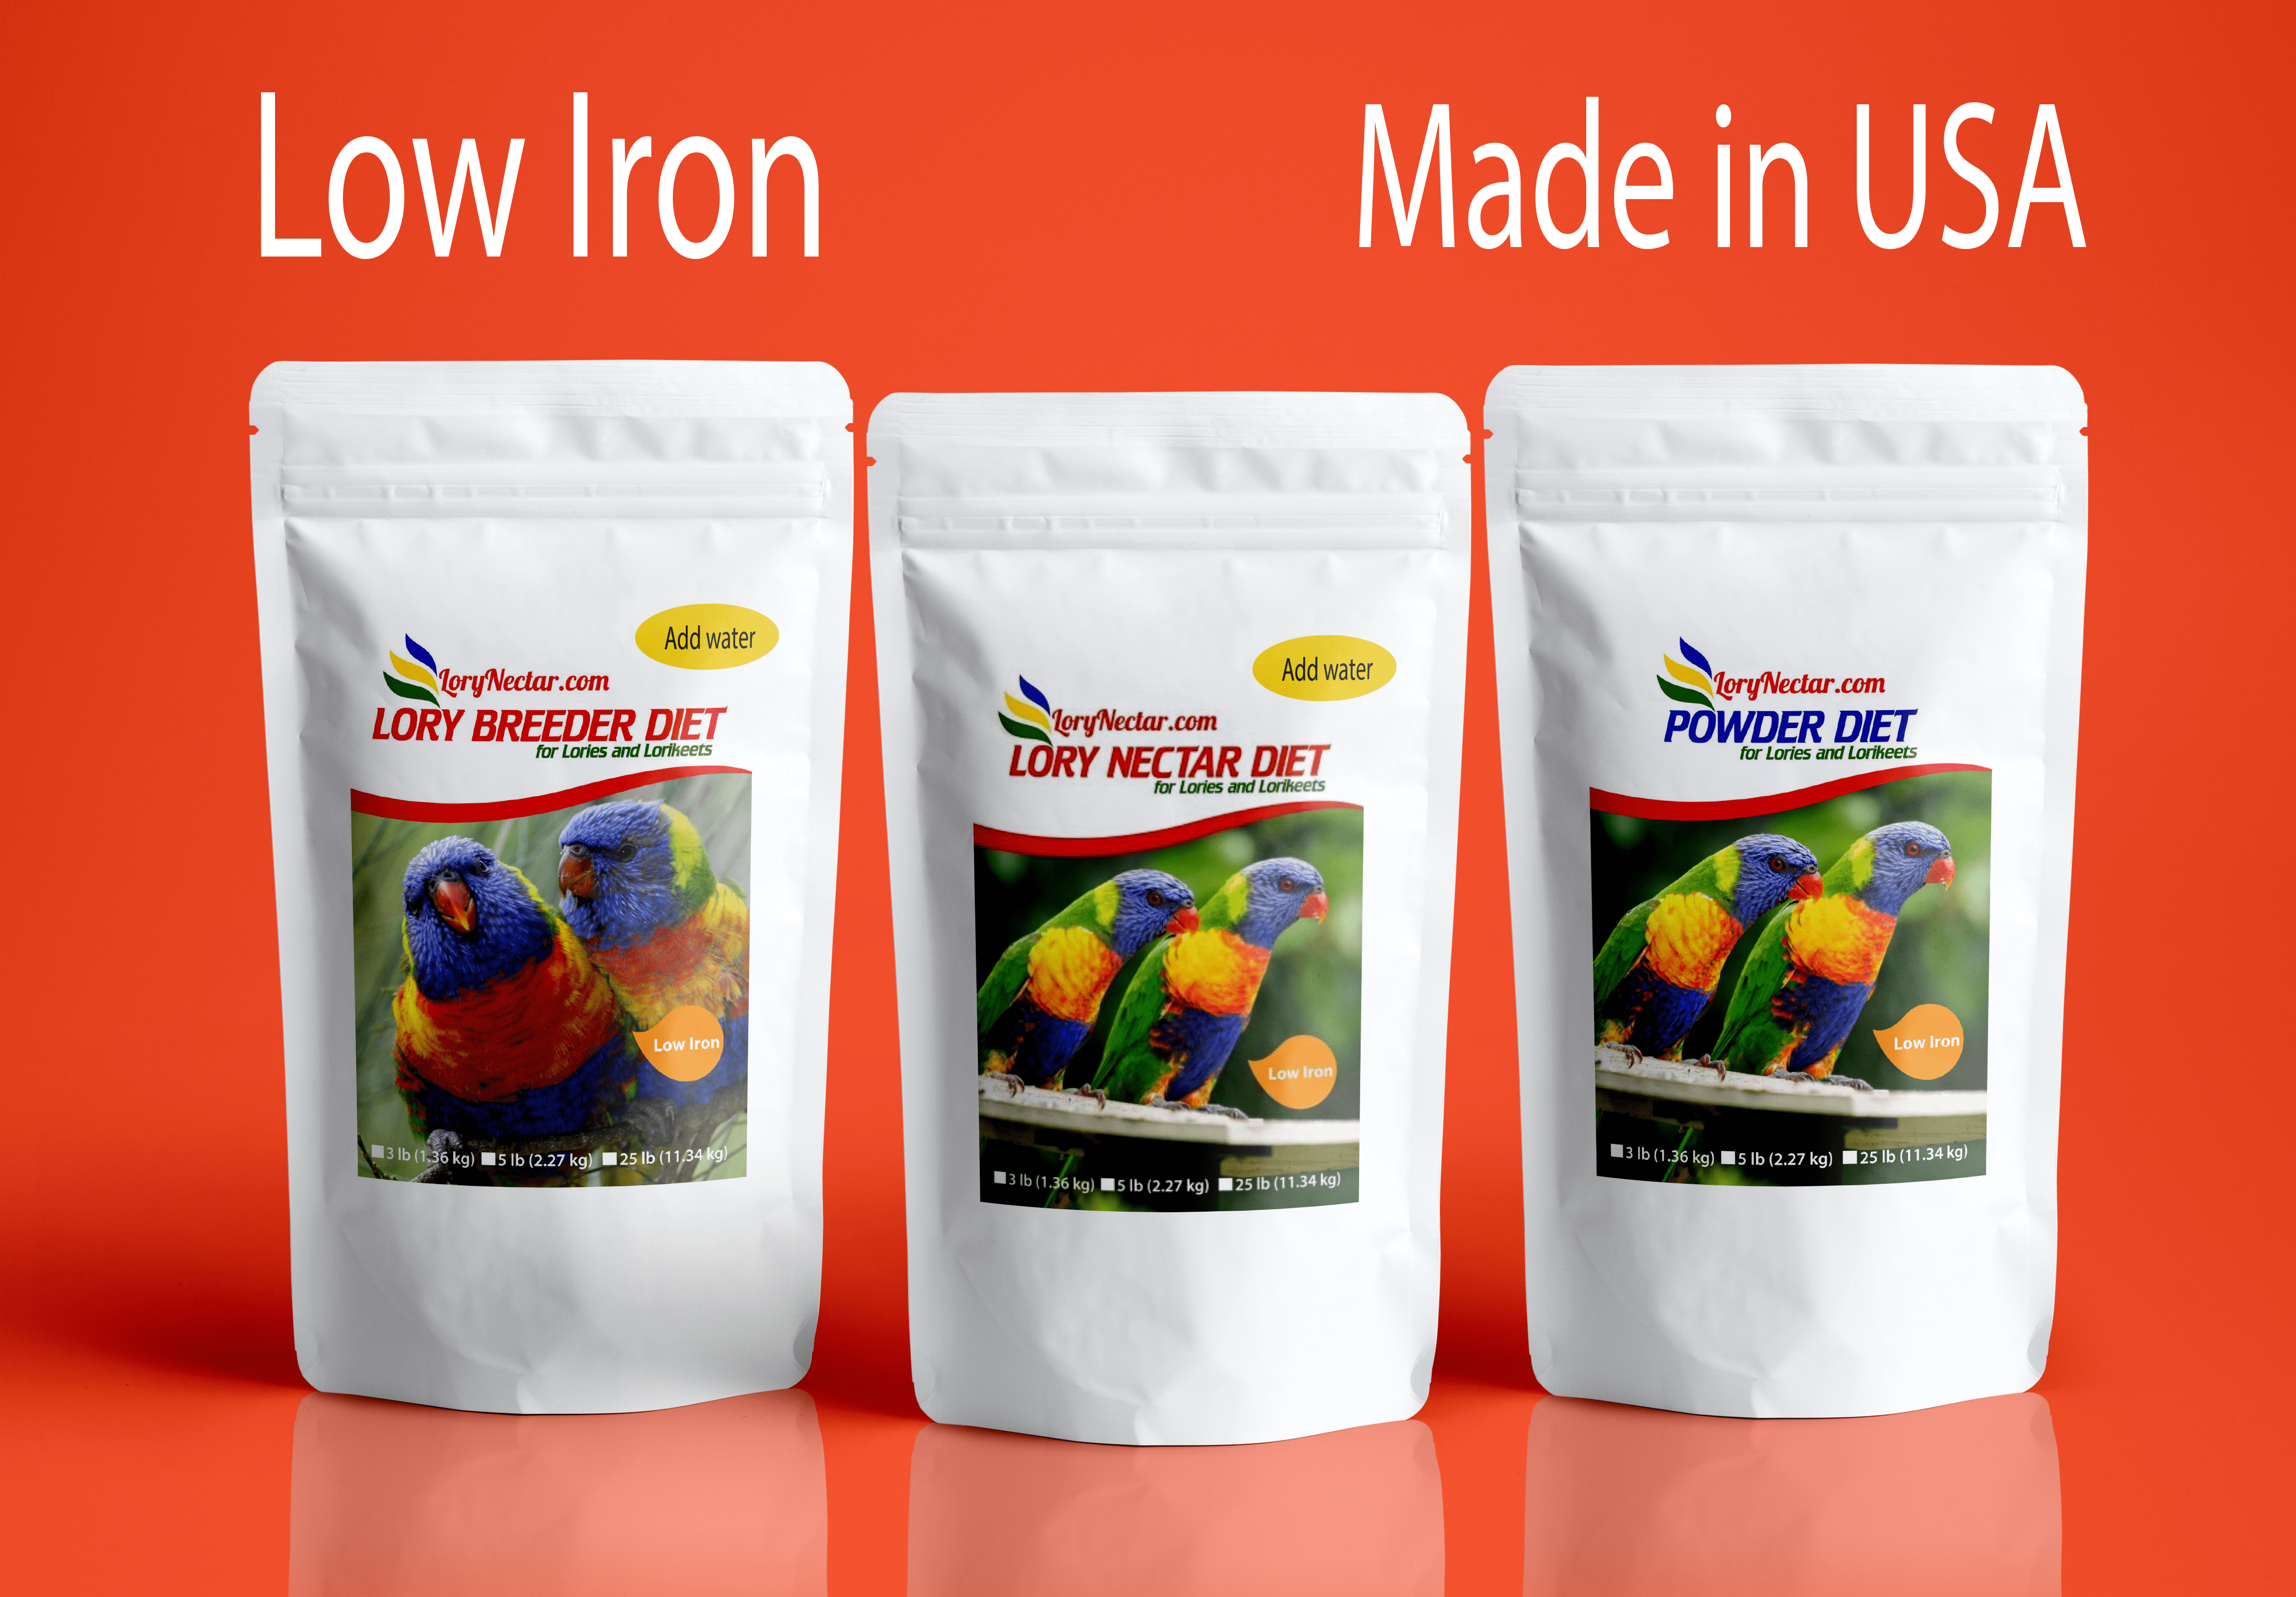 LoryNectar best low iron brand of lory nectar made in USA